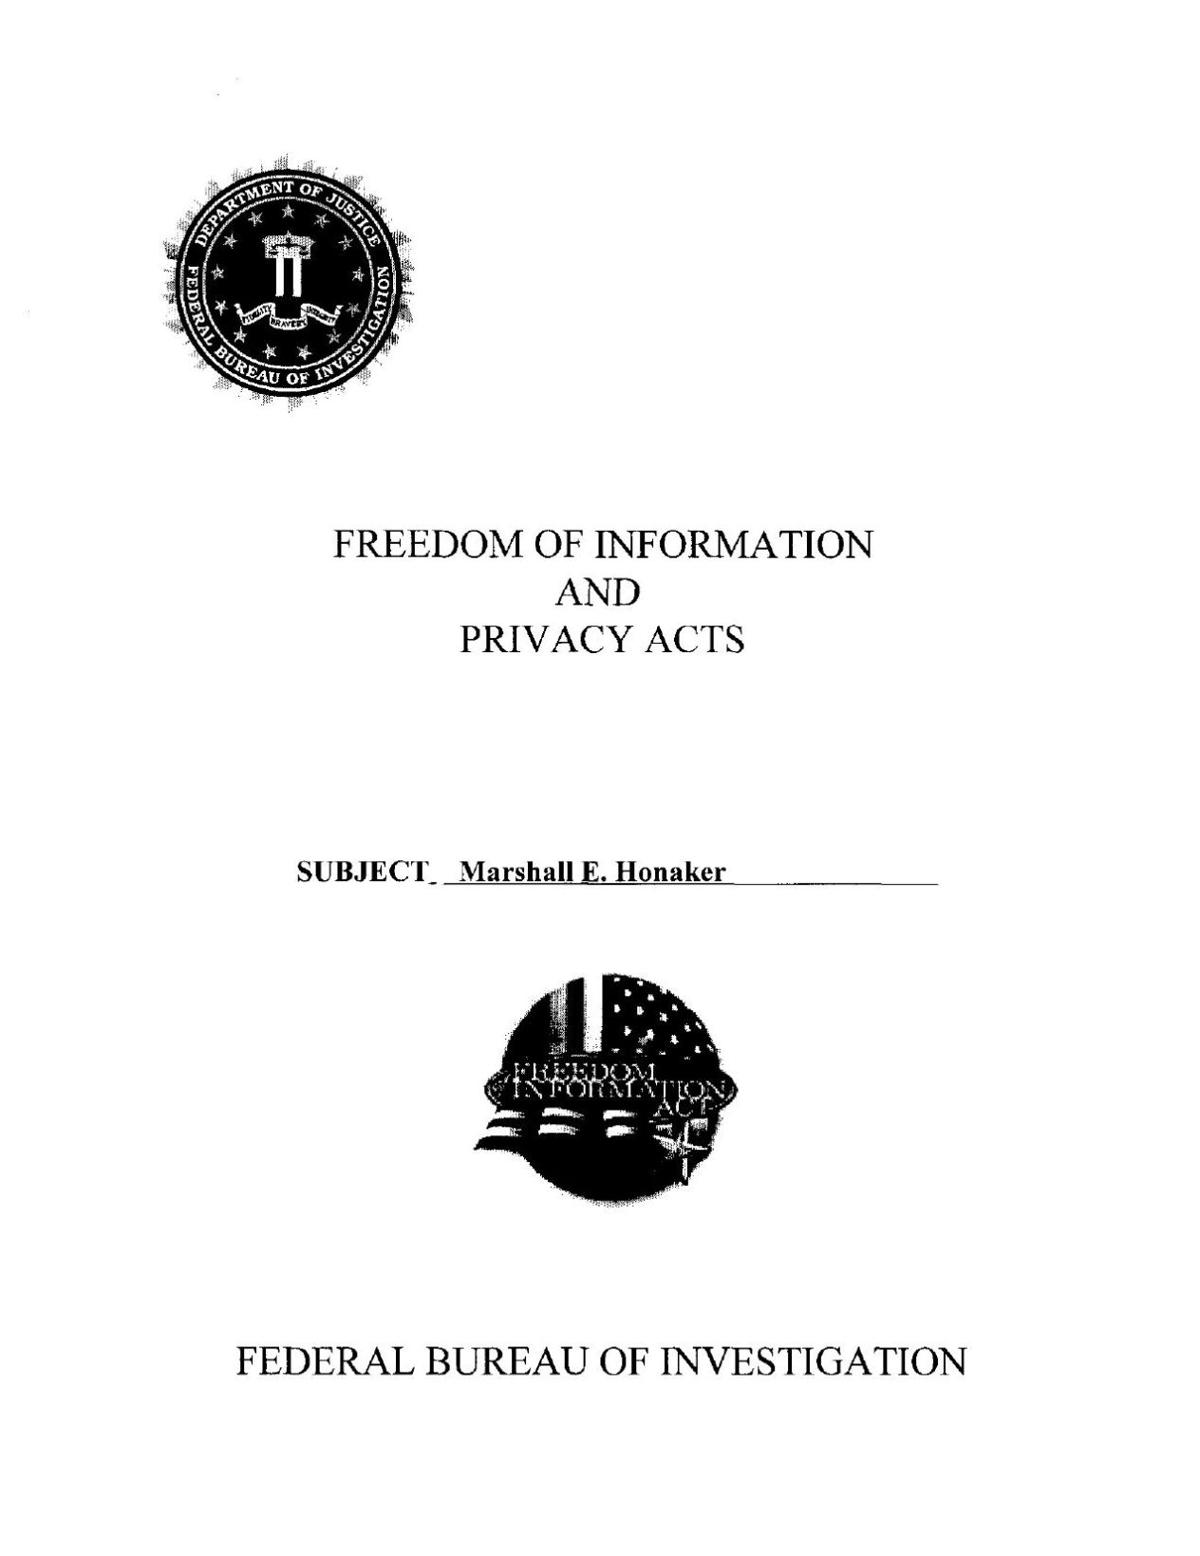 Marshall Honaker FBI file